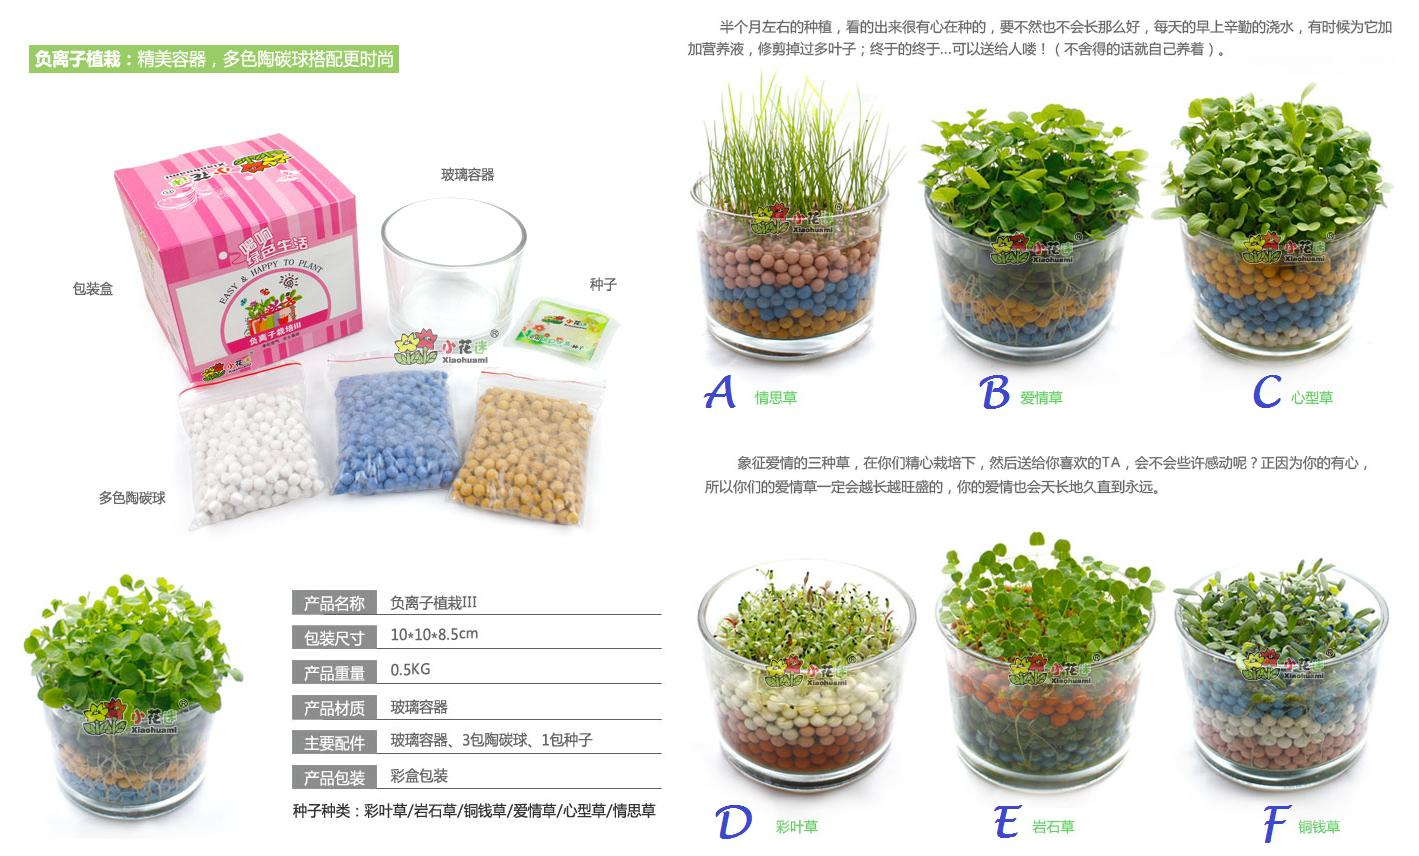 Diy office mini plant with pots litm end 8 8 2015 4 15 pm What are miniature plants grown in pots called